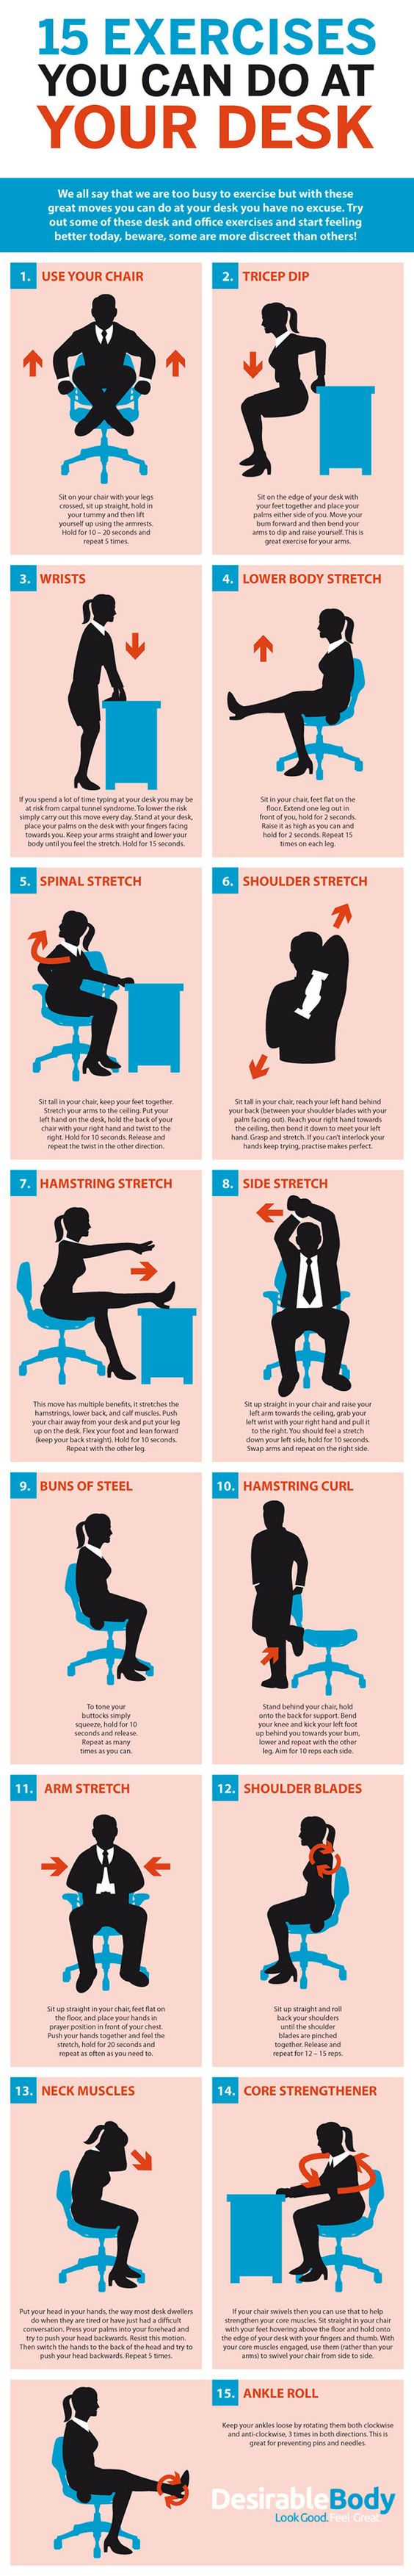 Desk-based exercises